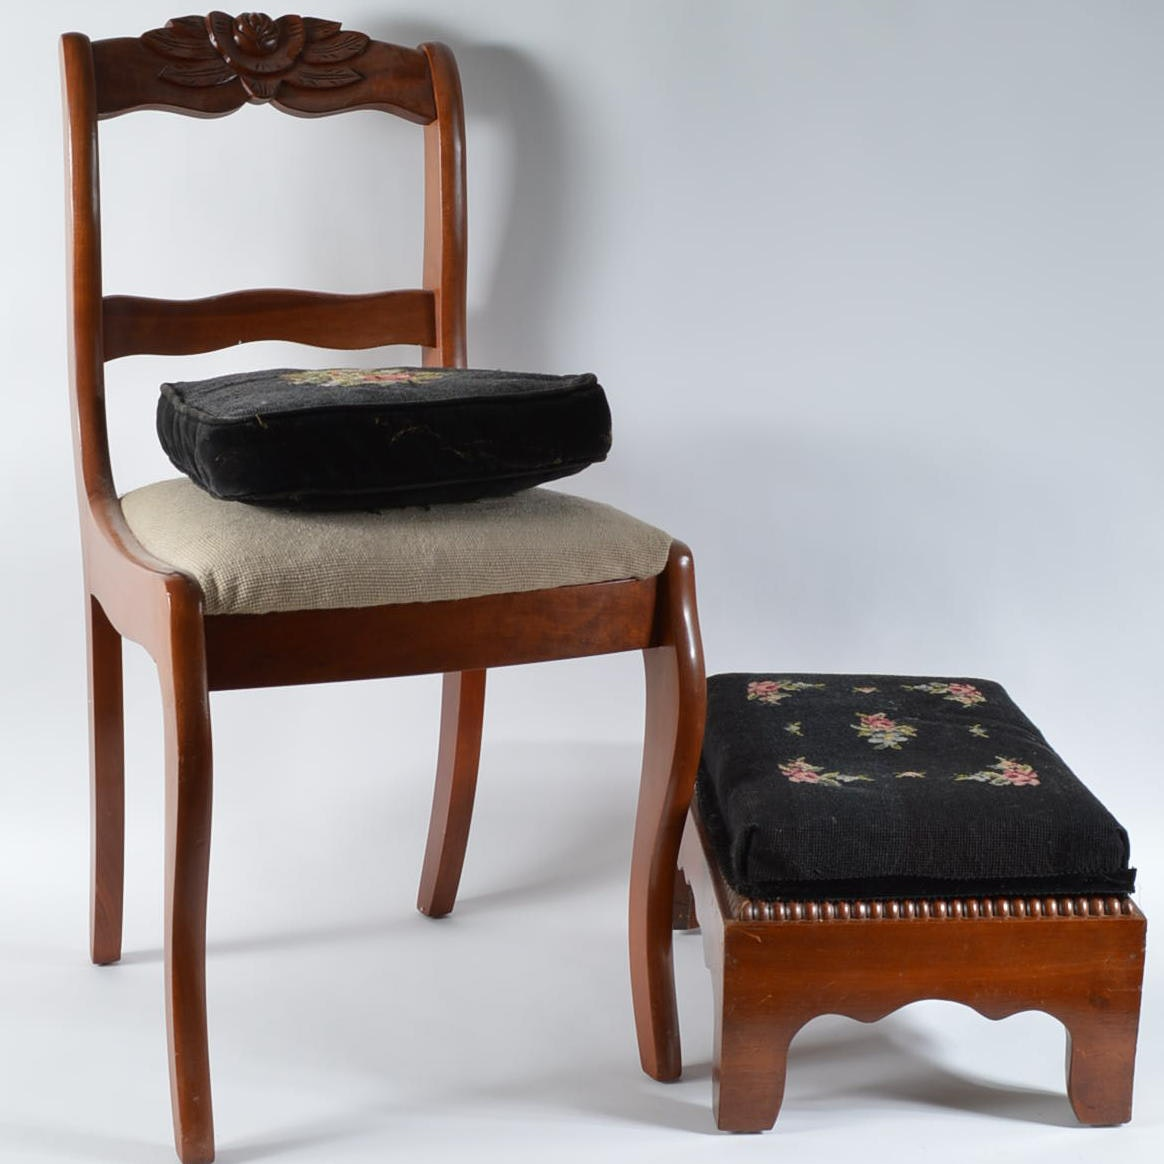 Chair, Footstool, and Pillow with Needlepoint Accents